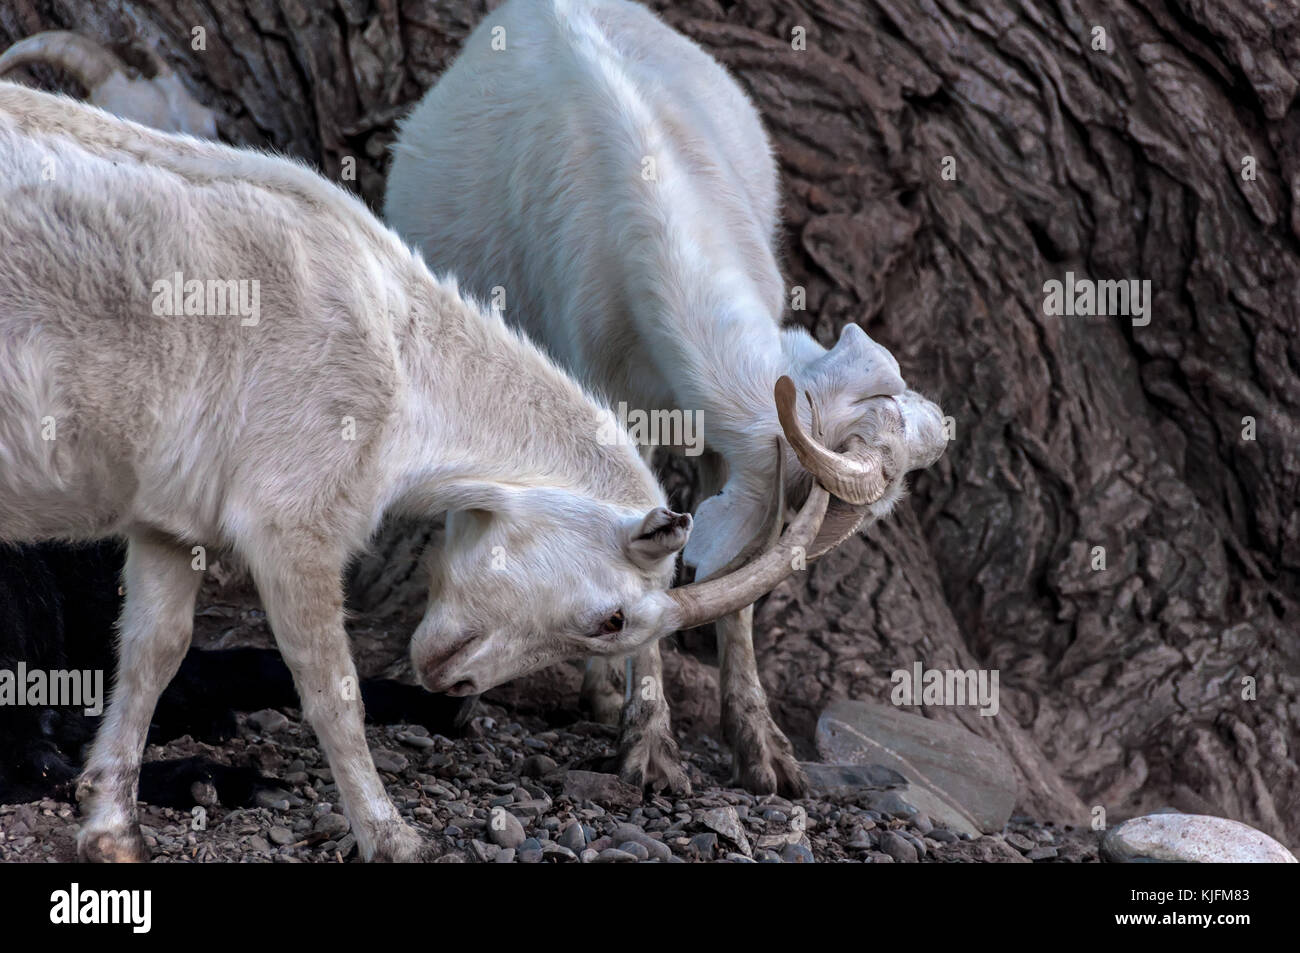 Two white goats fighting in a pasture in the mountains - Stock Image